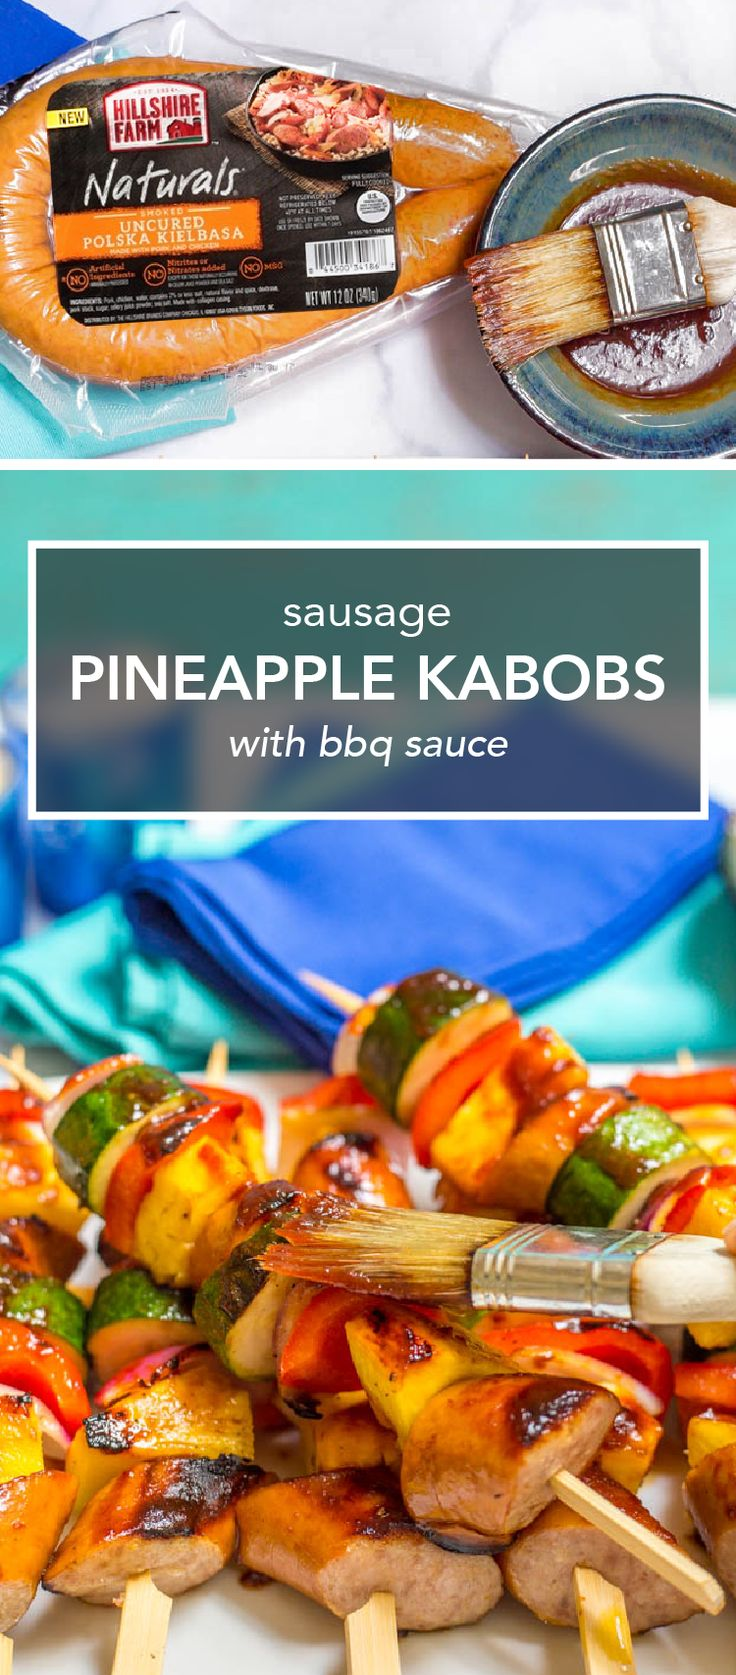 We love any recipe that's easy and delicious, and this dish for Sausage Pineapple Kabobs with BBQ Sauce sure fits the bill. Skewer up Hillshire Farm Naturals Polska Kielbasa Rope, zucchini, red peppers, and pineapple to make these flavorful sticks of tasty summer flavors. And you can easily customize this barbecue creation with your choice of seasonal produce. Now this is a dish your family will request all summer long—and you can find everything you need at Kroger.